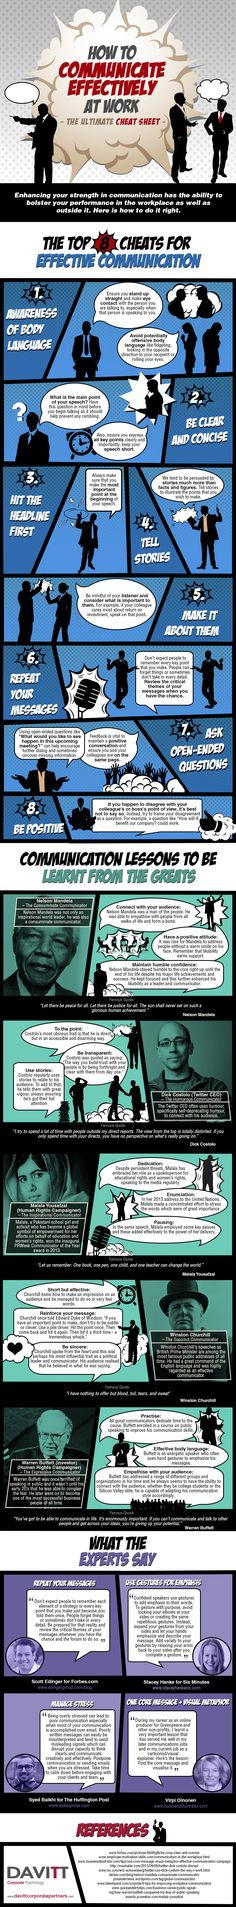 How To Communicate Effectively At Work The Ultimate Cheat Sheet Infographic Communication Business Marketing Mail, Marketing Digital, It Management, Business Management, Project Management, Effective Communication, Communication Skills, Leadership Development, Etre Un Bon Manager